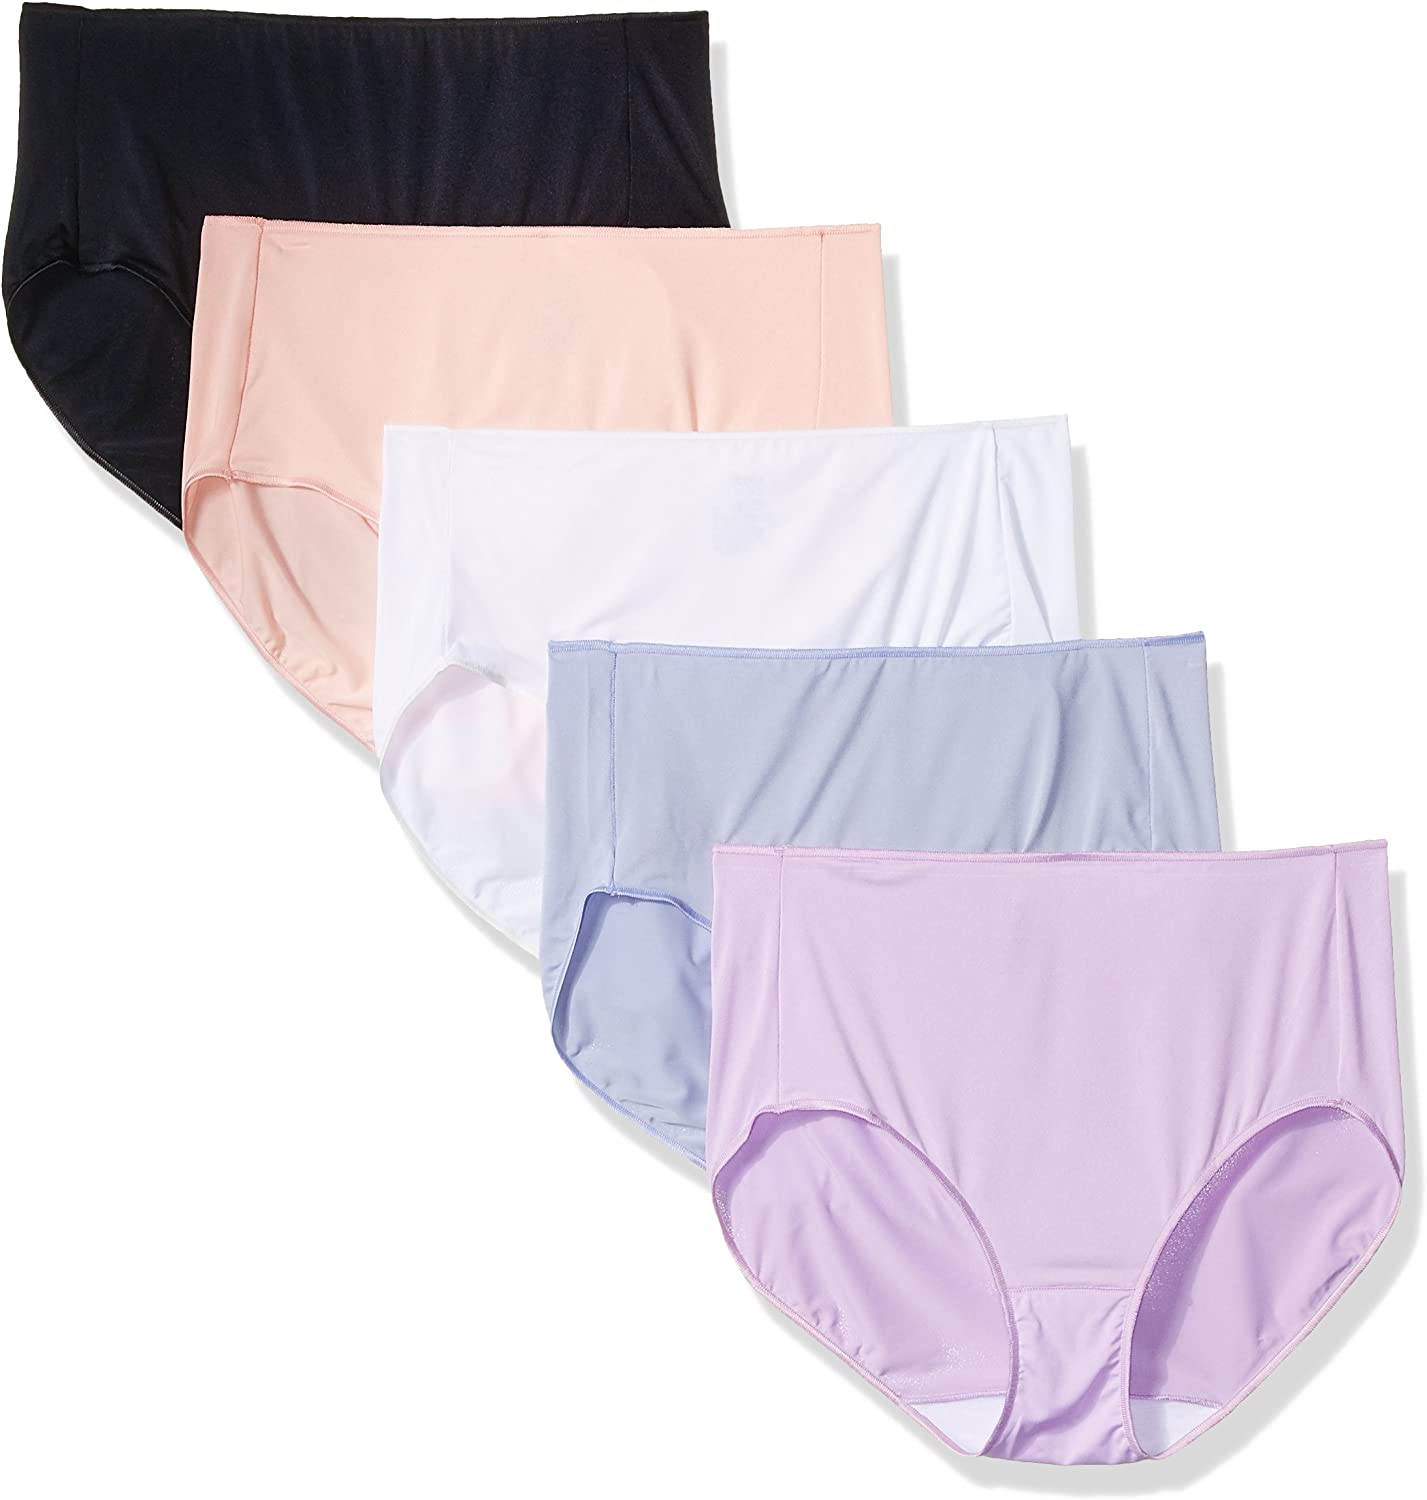 Hanes Women's Microfiber Brief Multipack